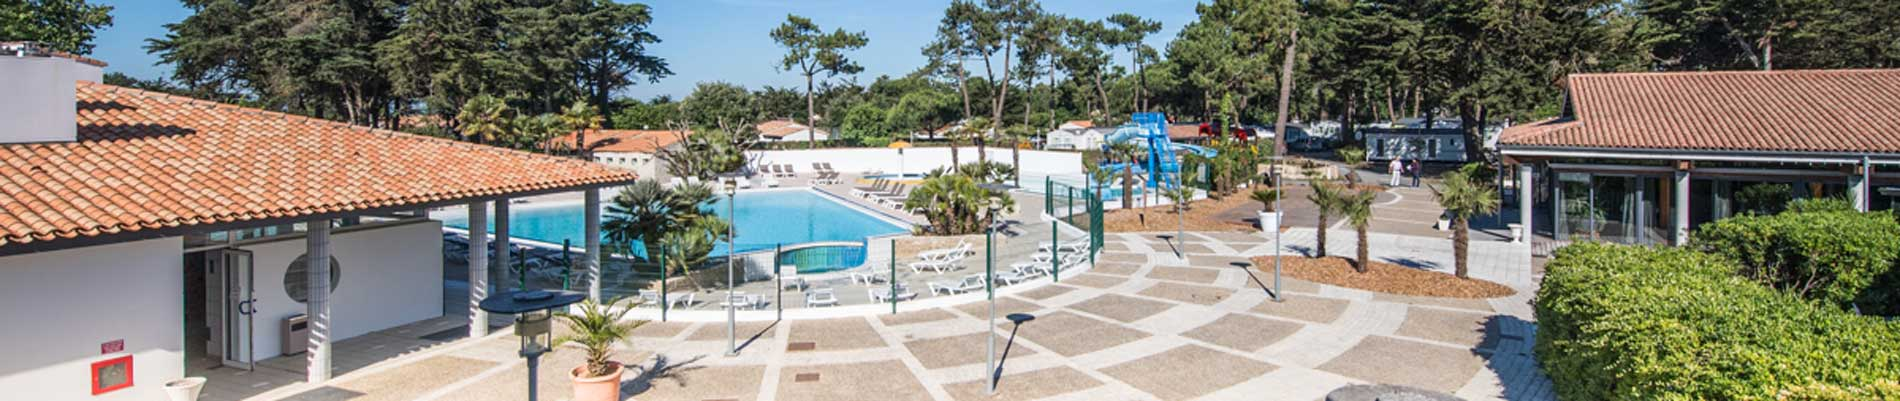 chambres hotel charente-maritime